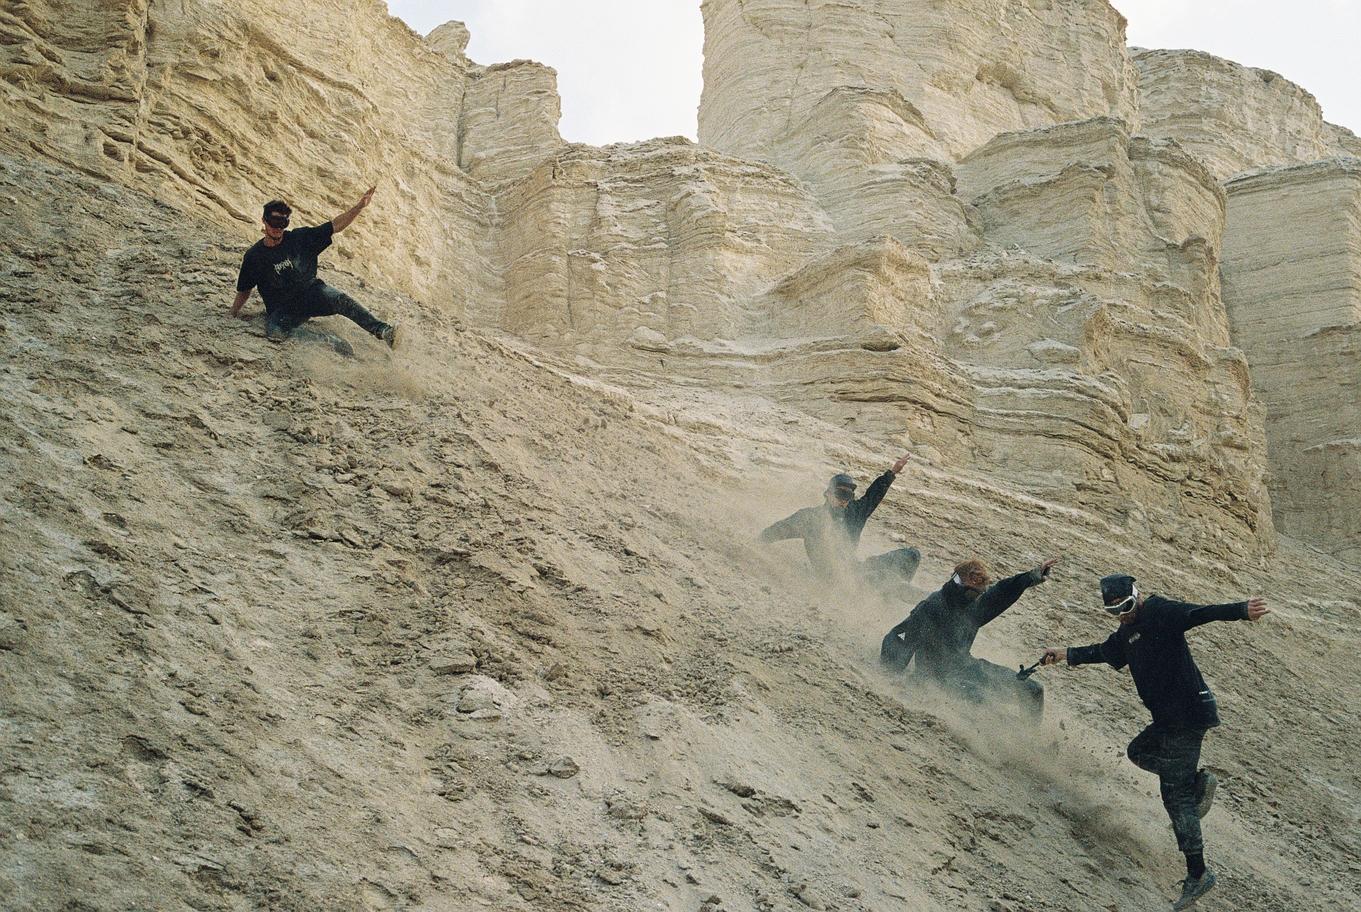 Parkour rampage in Negev